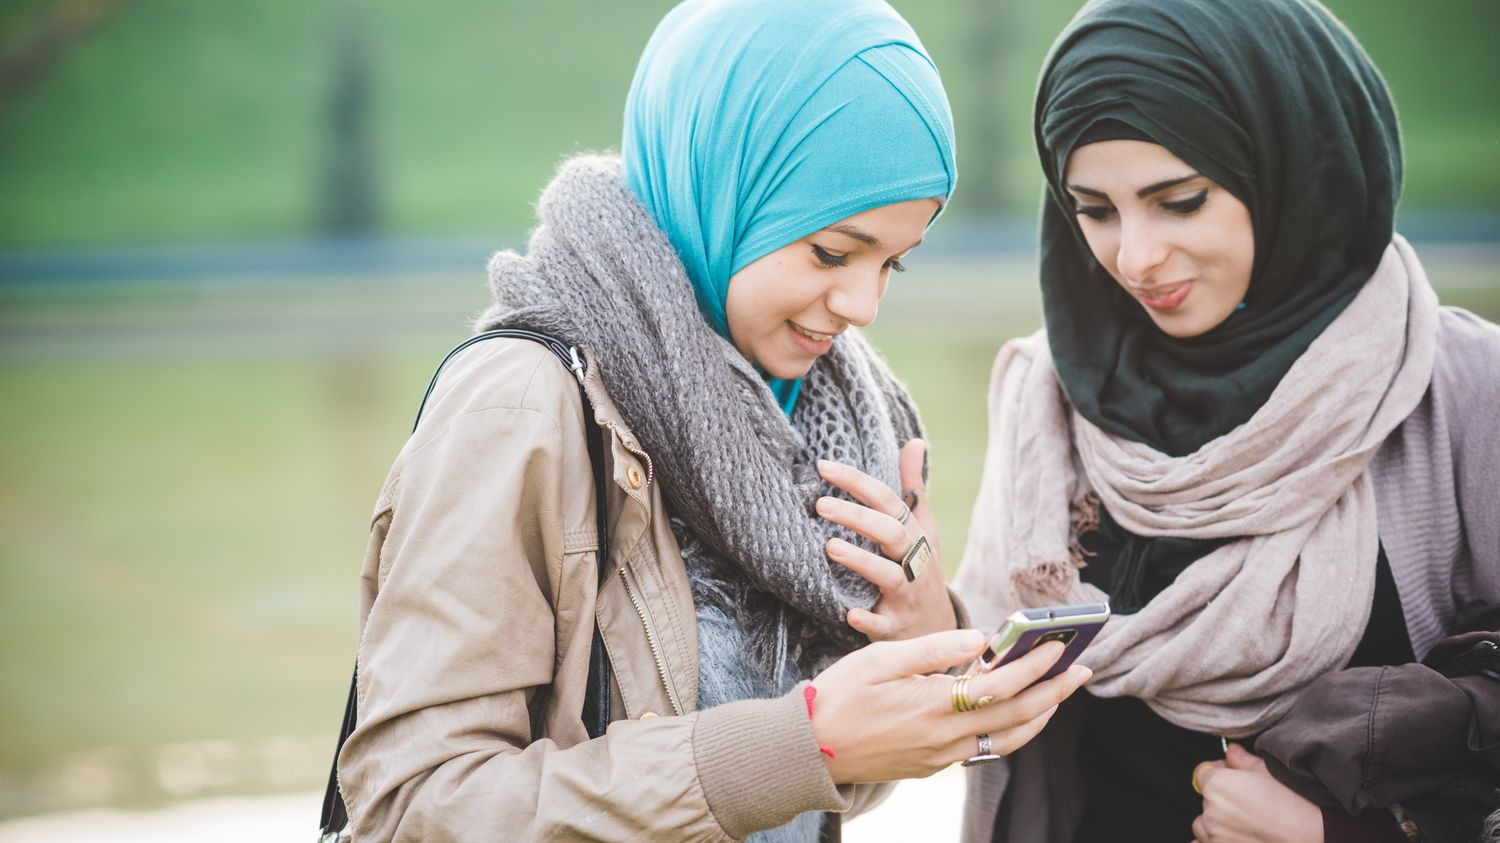 loretto muslim girl personals Meet thousands of single muslims in young america with mingle2's free muslim  personal ads and chat rooms our network of muslim men and women in young.